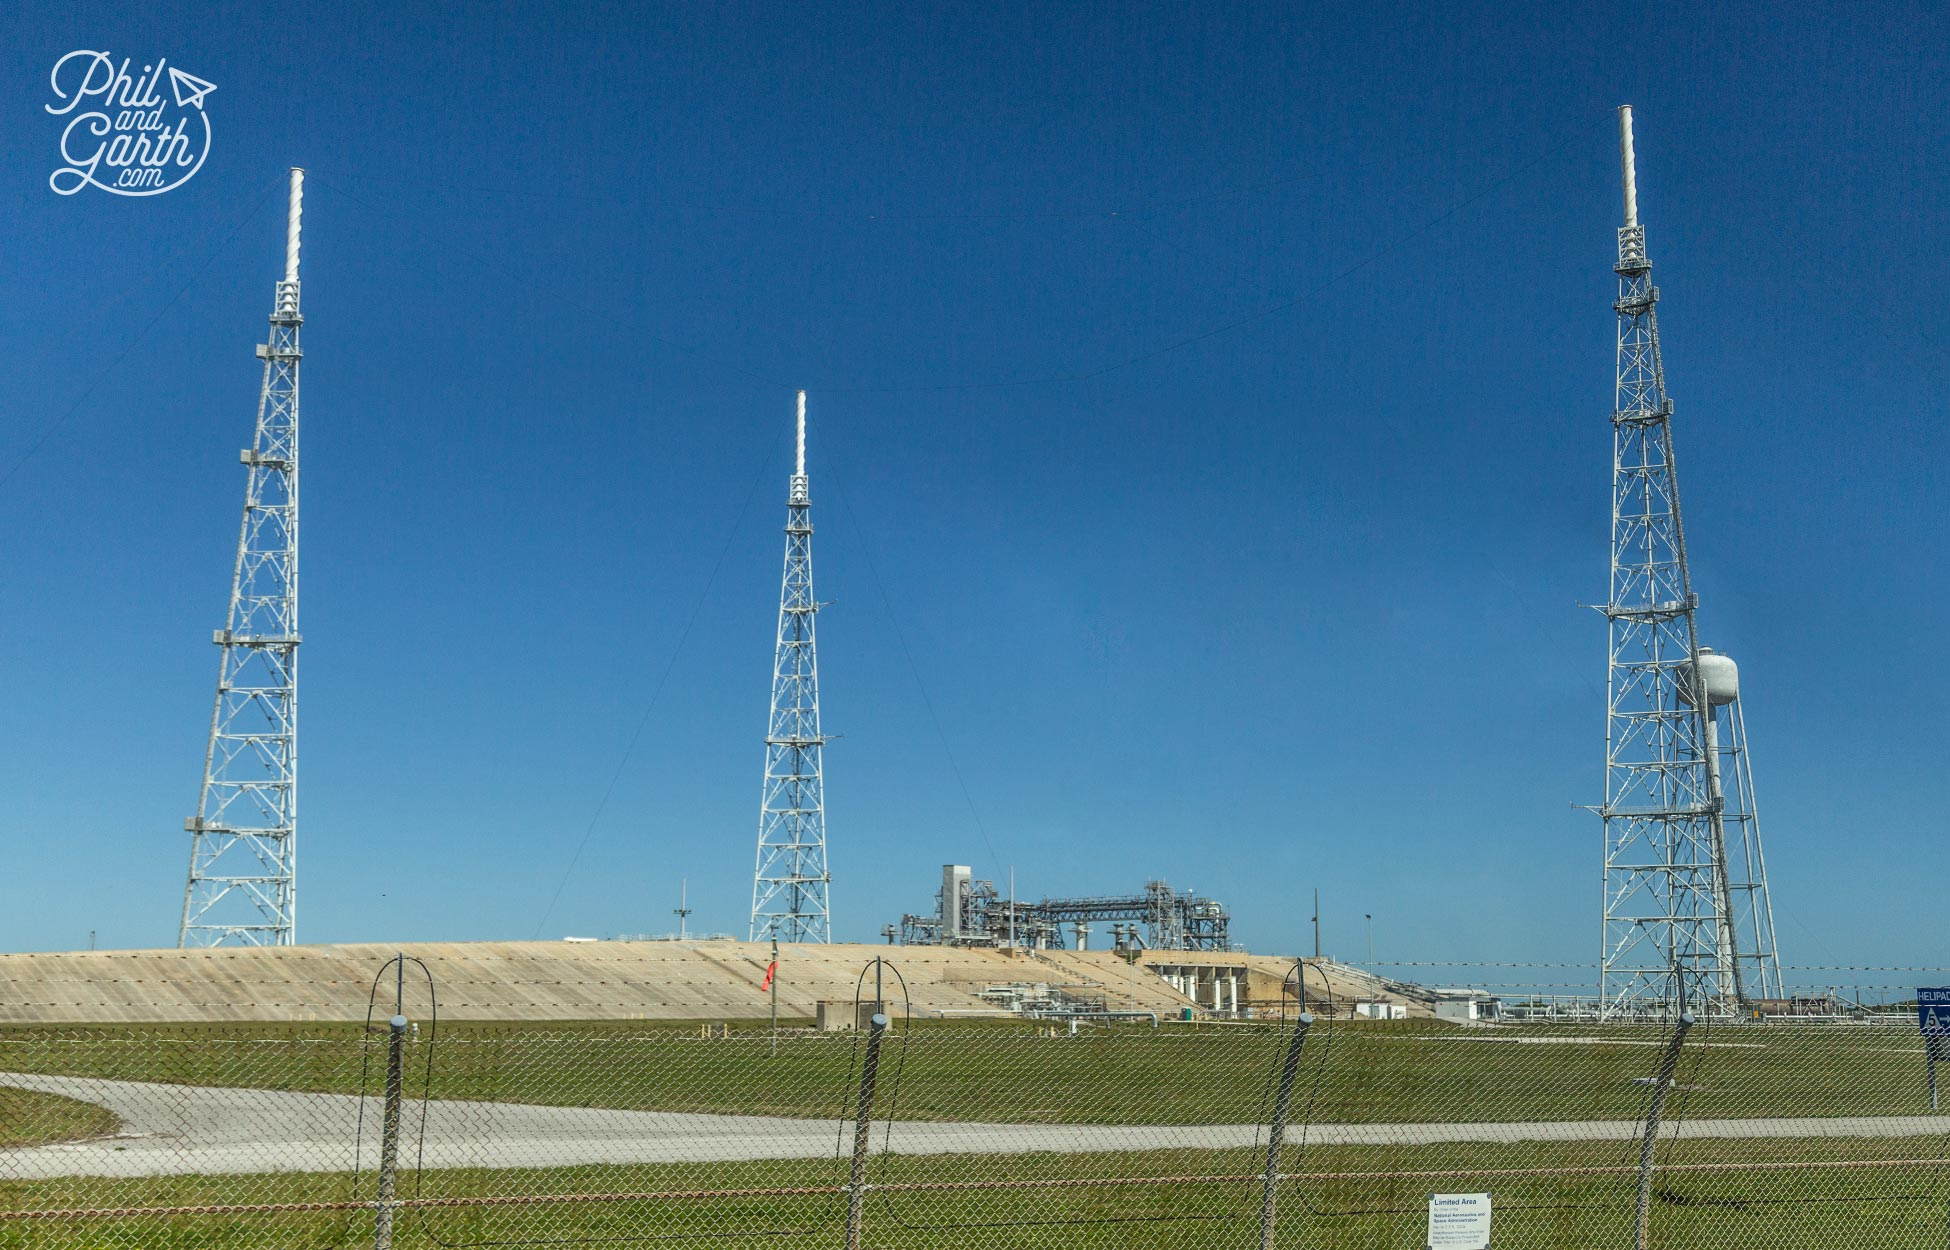 Launch pad 39B which will be used for NASAs next generation of deep space launches